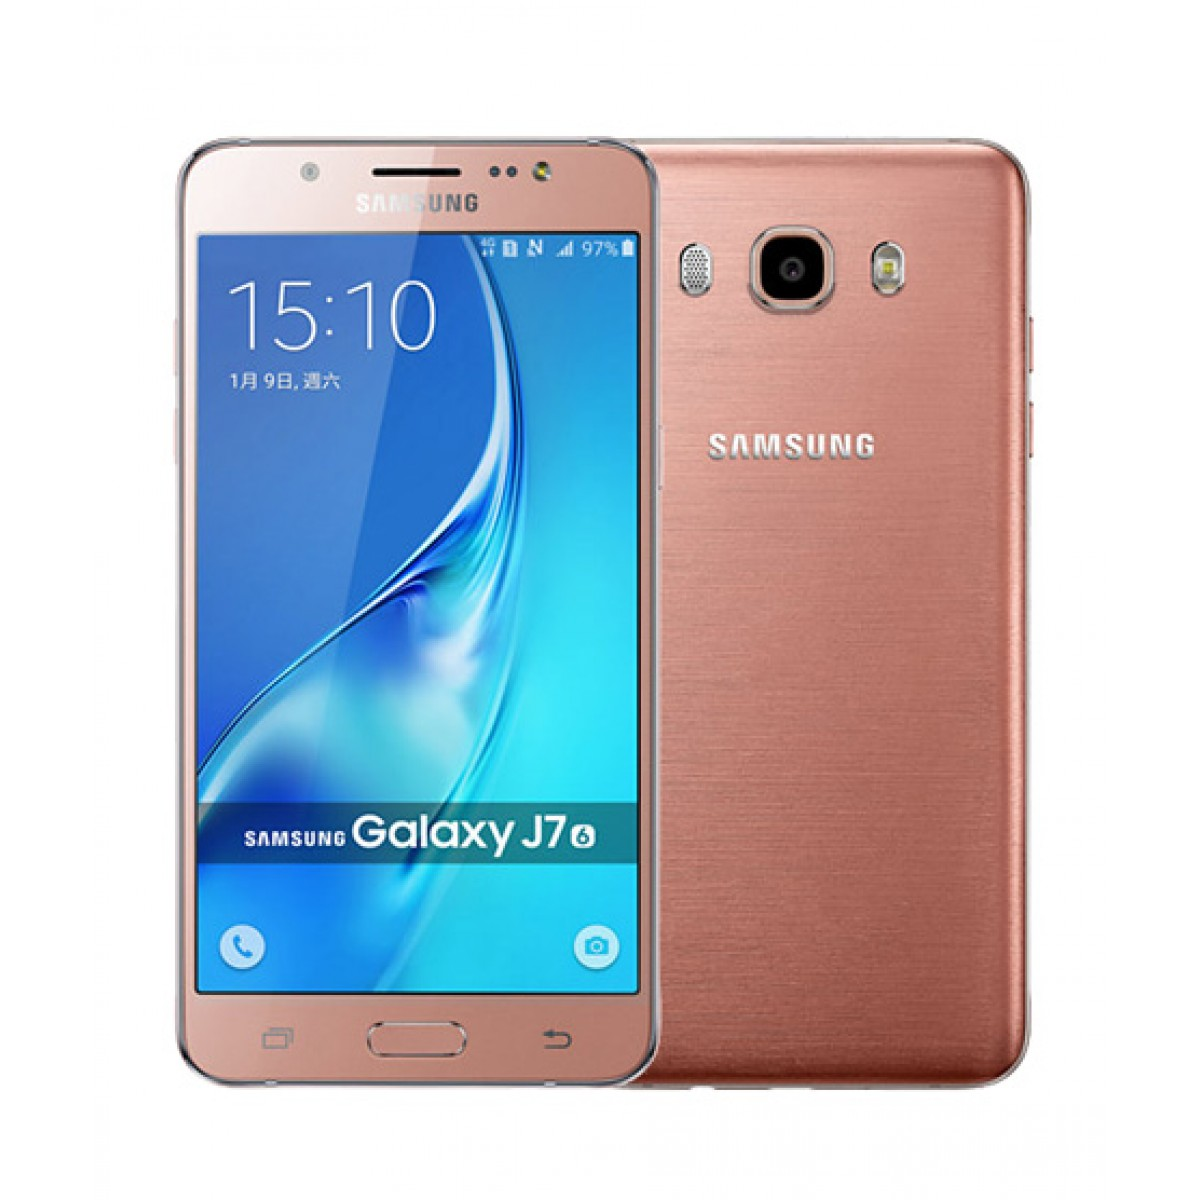 Samsung Galaxy J7 2016 4G Dual Sim Pink Gold (J710FD) - Official Warranty